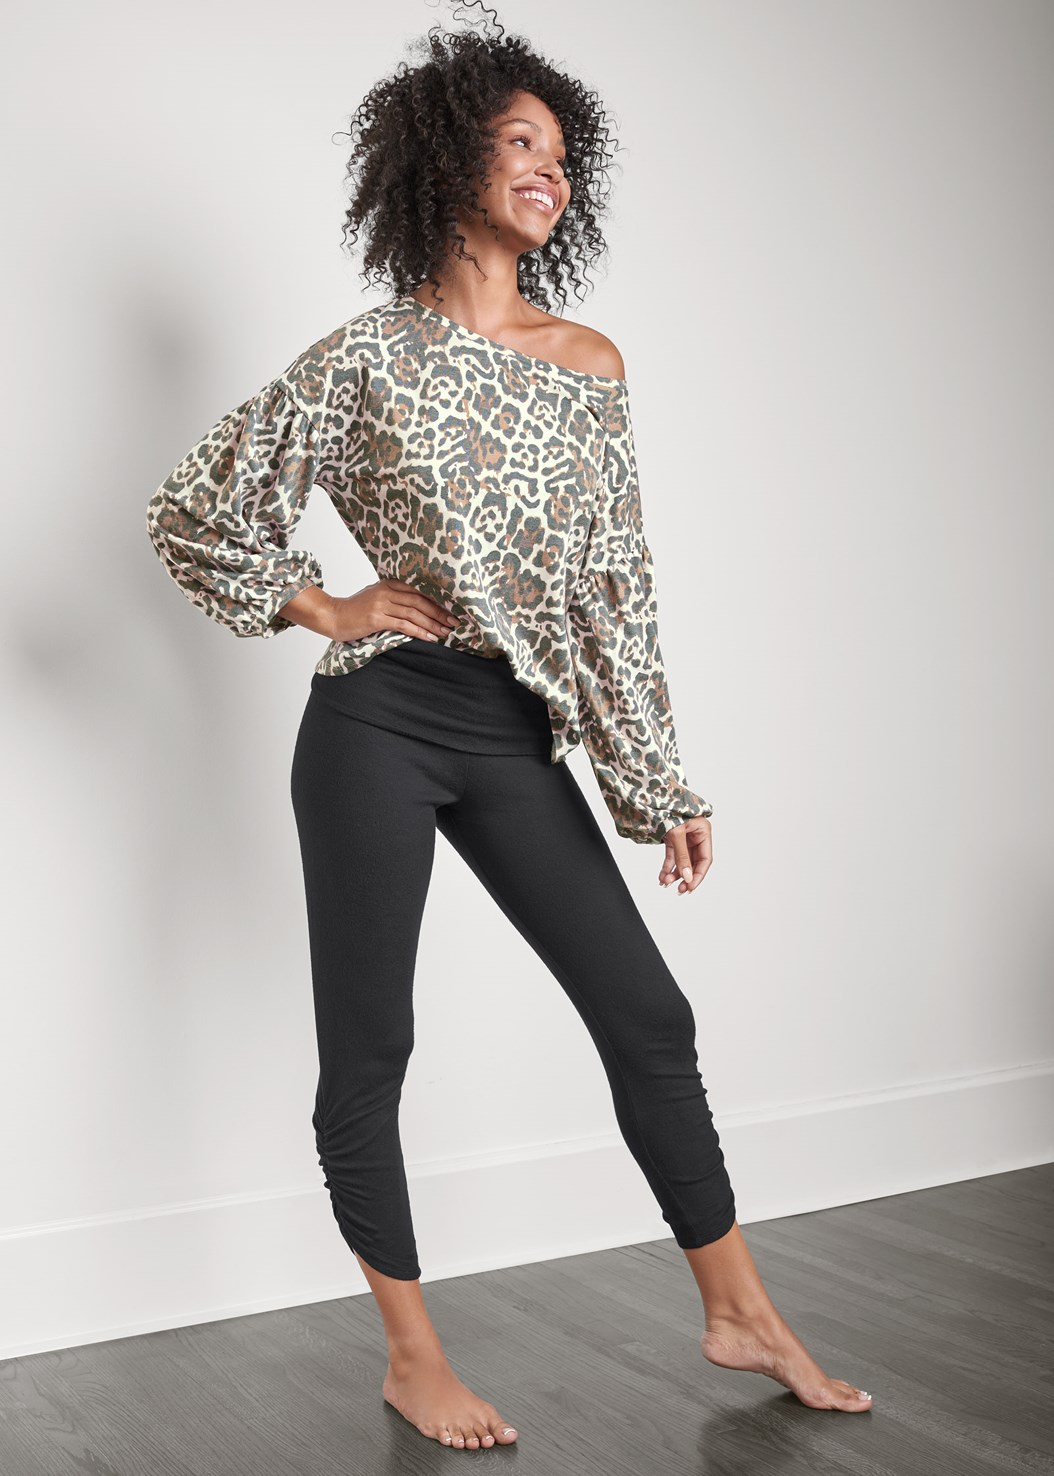 Crop Hacci Lounge Pant,Balloon Sleeve Lounge Top,Strapless Bra With Geo Lace